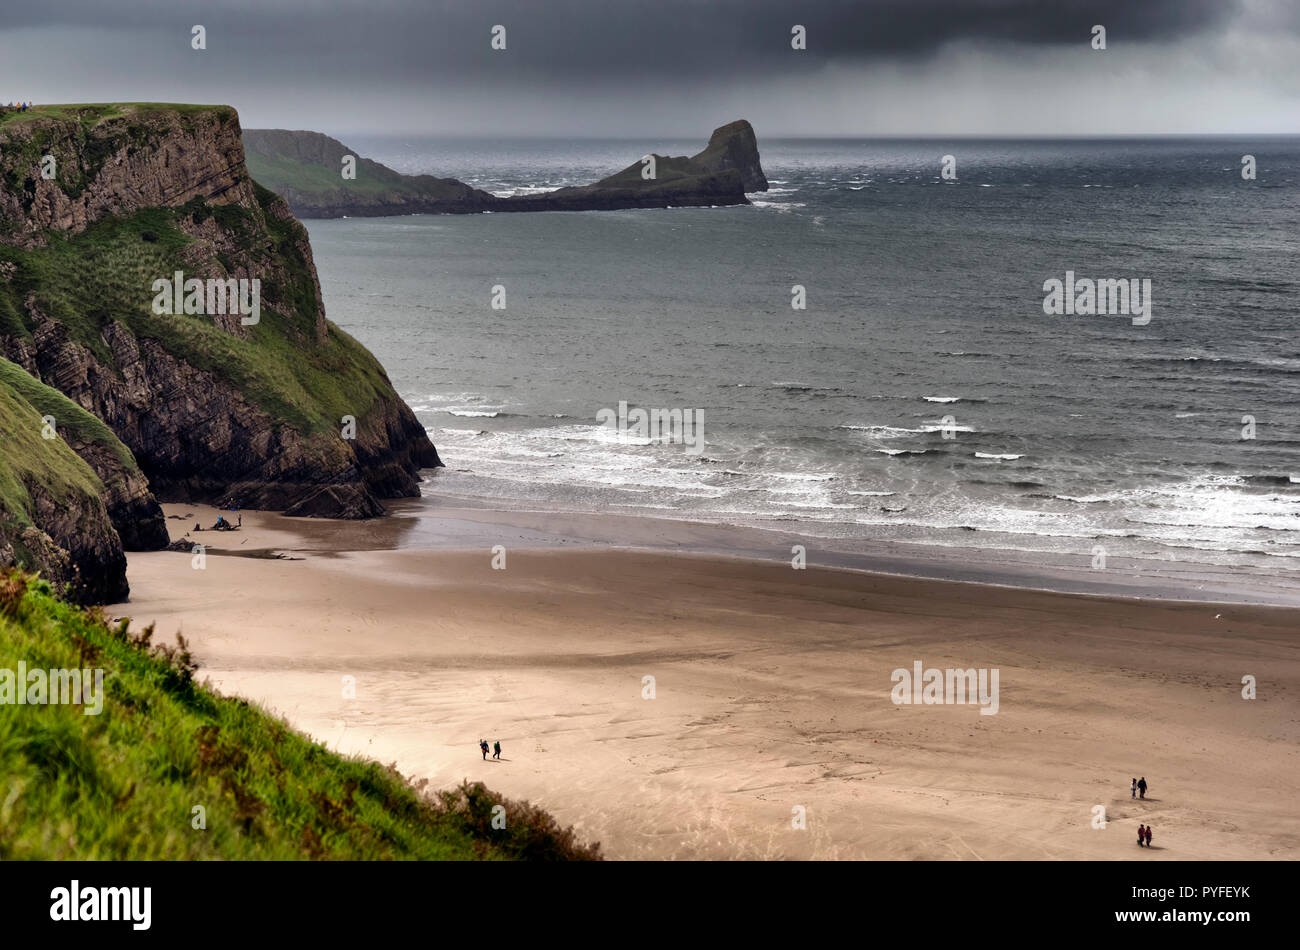 Worms Head, Rhossili Bay, the Gower Peninsula, South Wales (1) - Stock Image